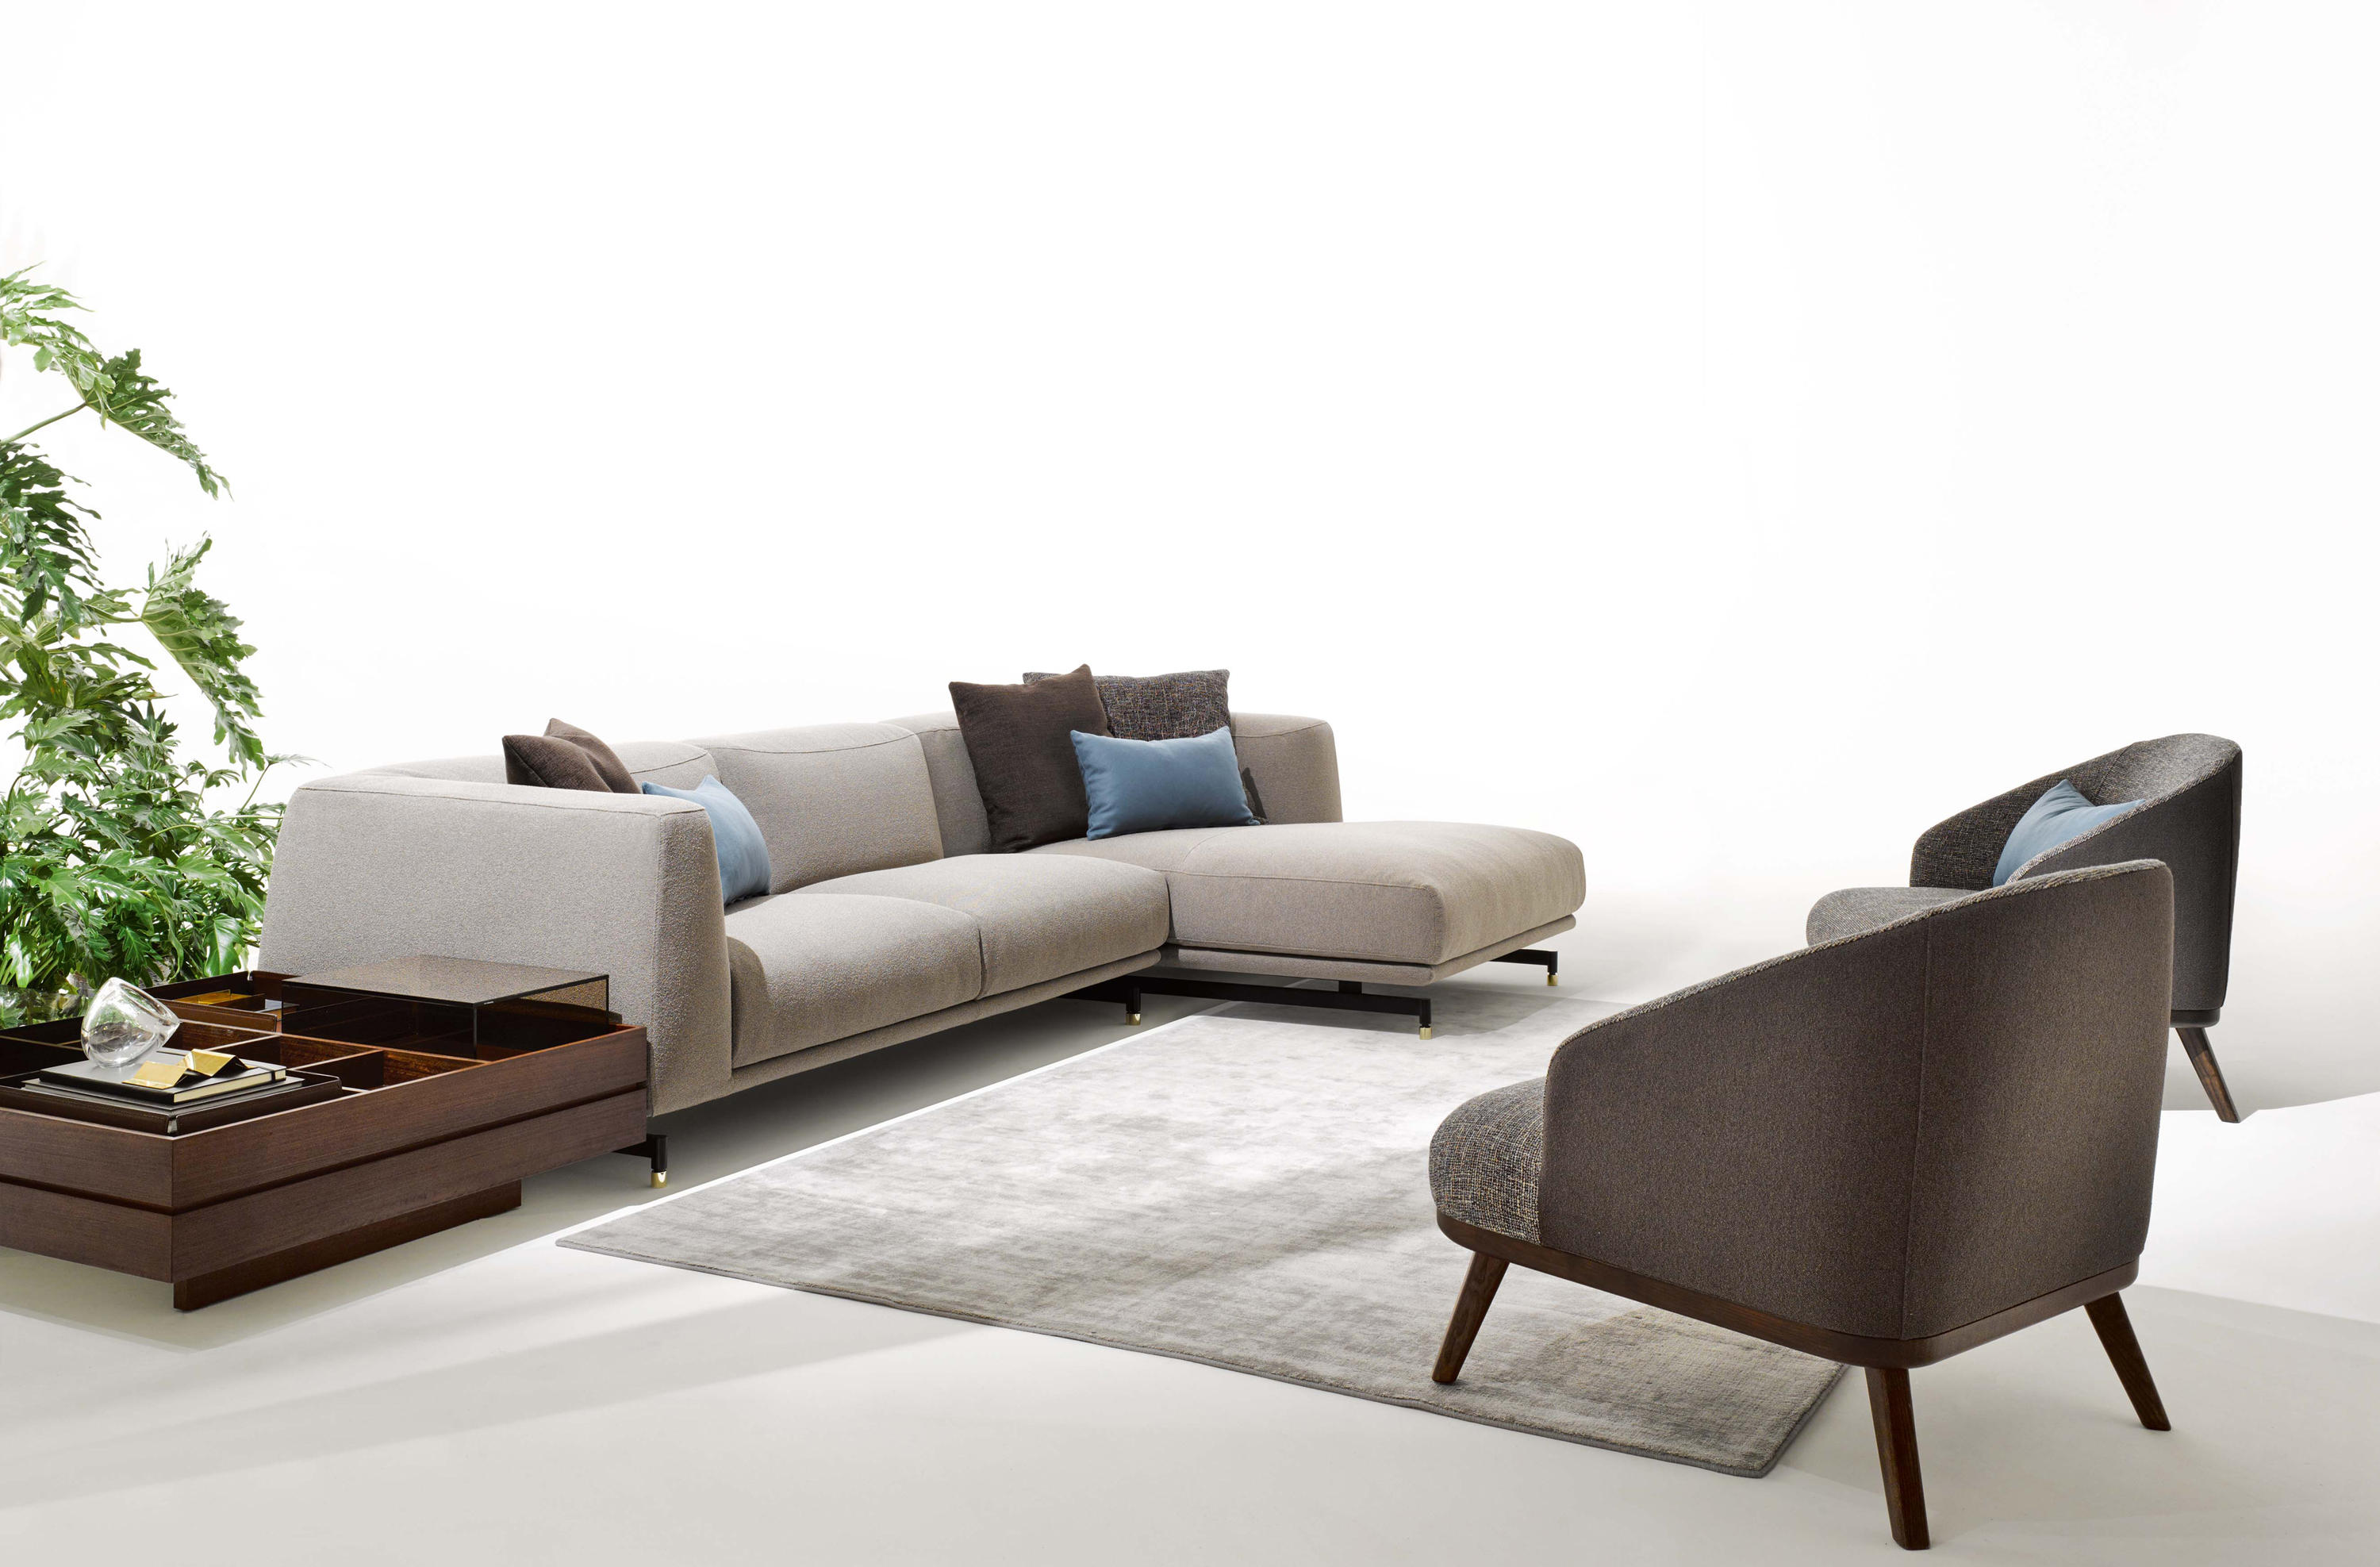 St Germain Sofas From Ditre Italia Architonic